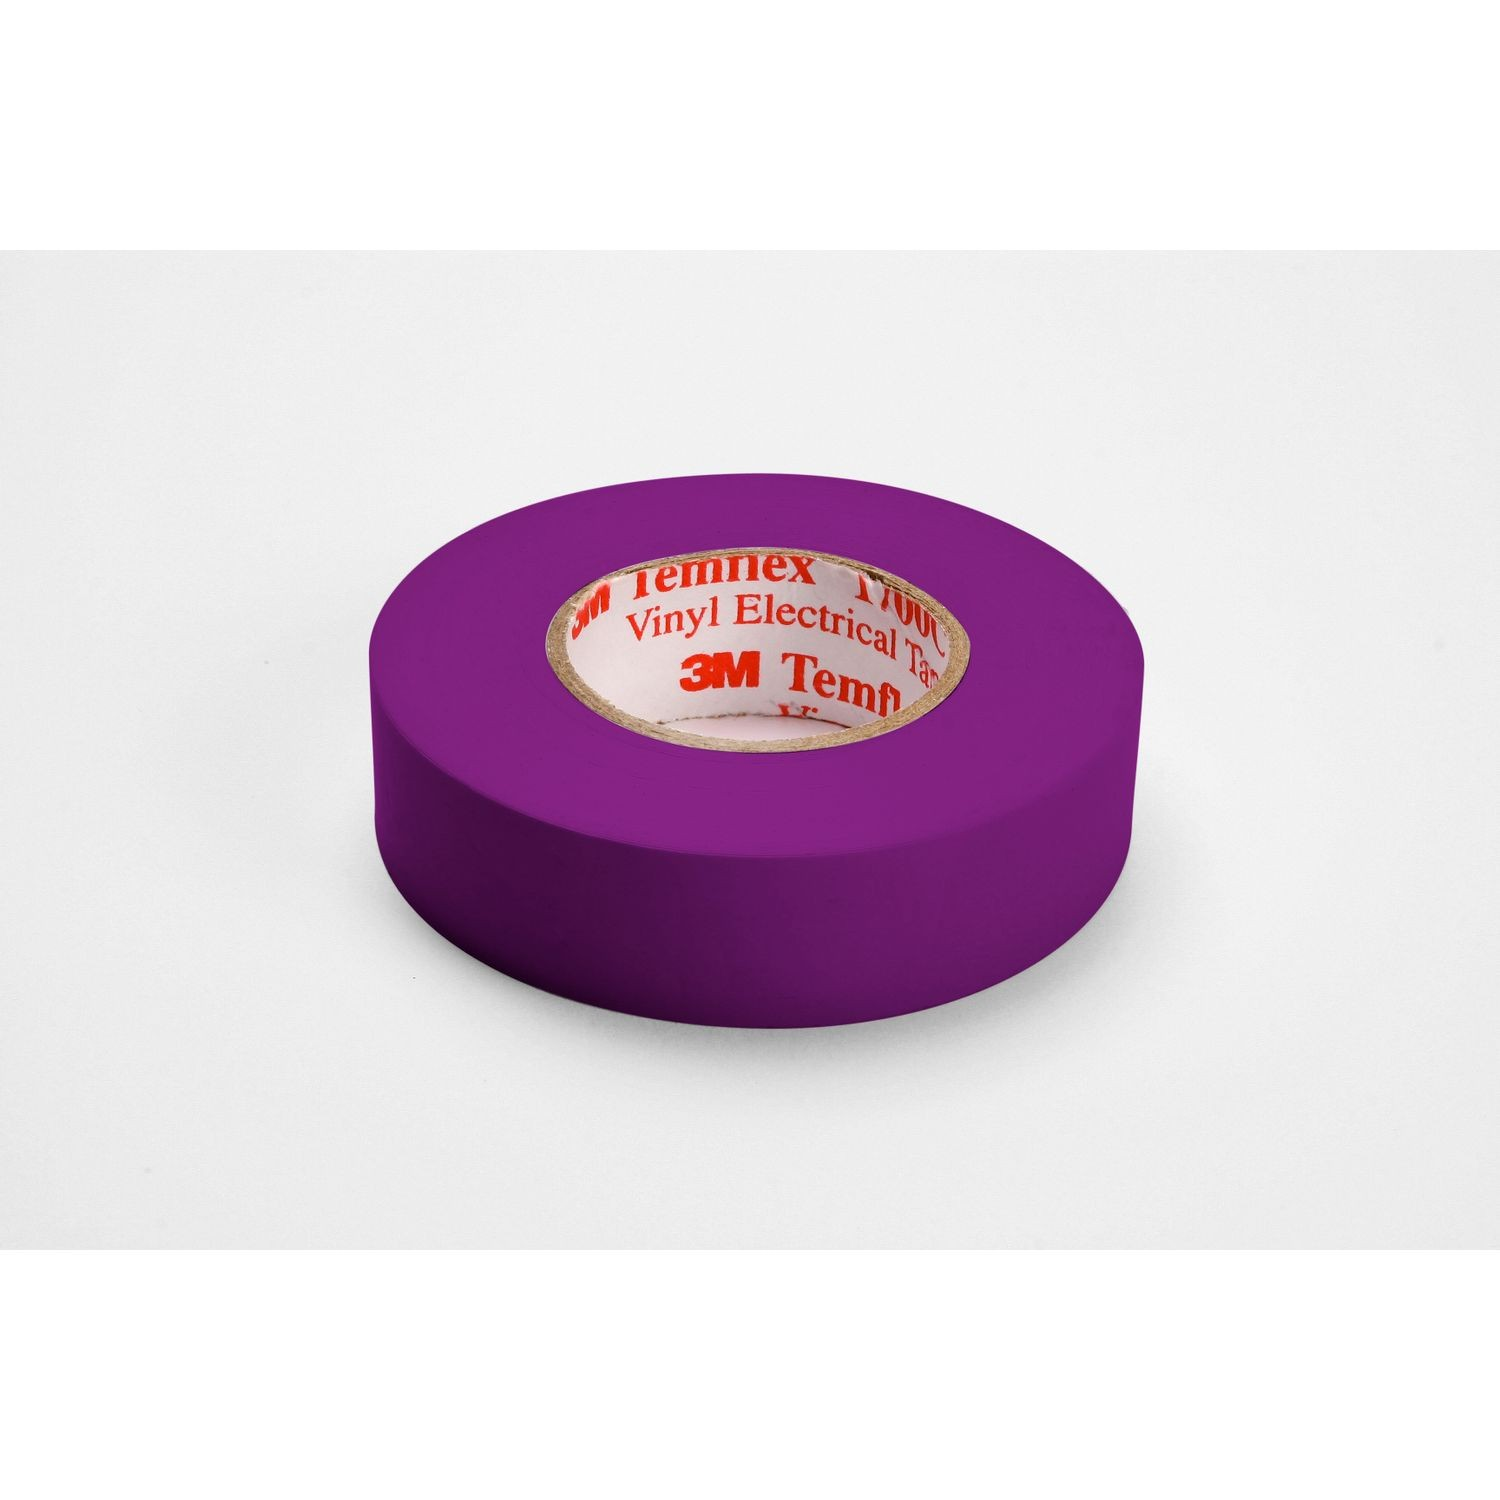 3M Temflex Violet Vinyl Electrical Tape 3/4 IN. X 66 ft.